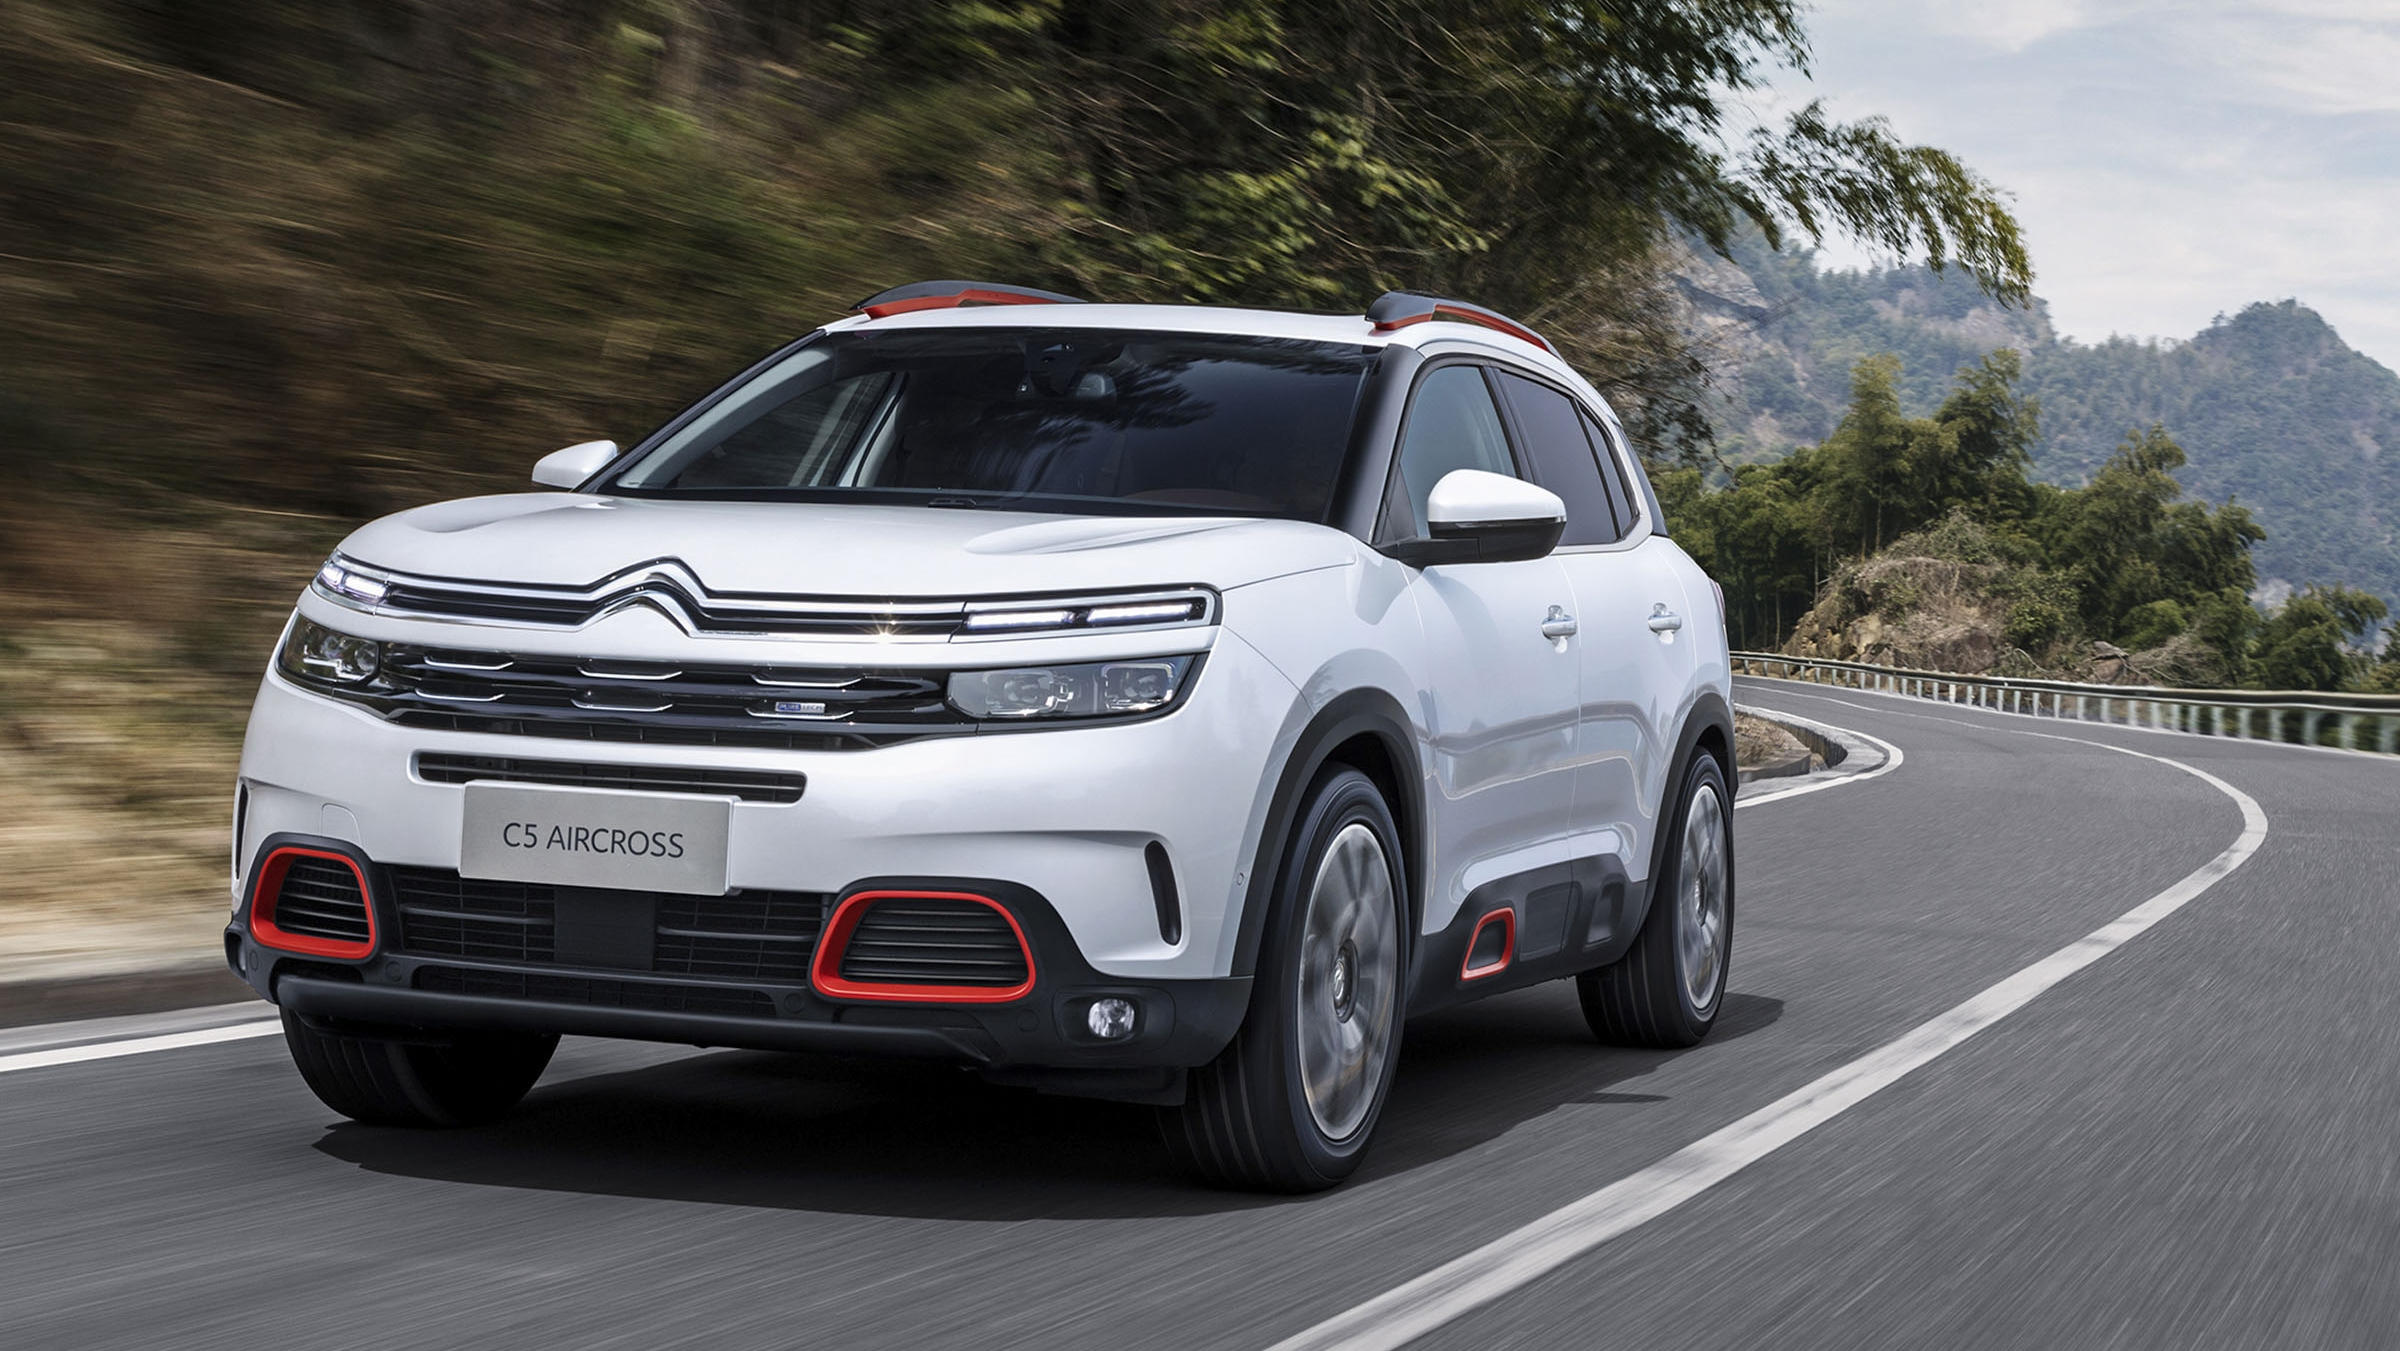 citroen c5 aircross bows in china comes to europe in 2018 top speed. Black Bedroom Furniture Sets. Home Design Ideas